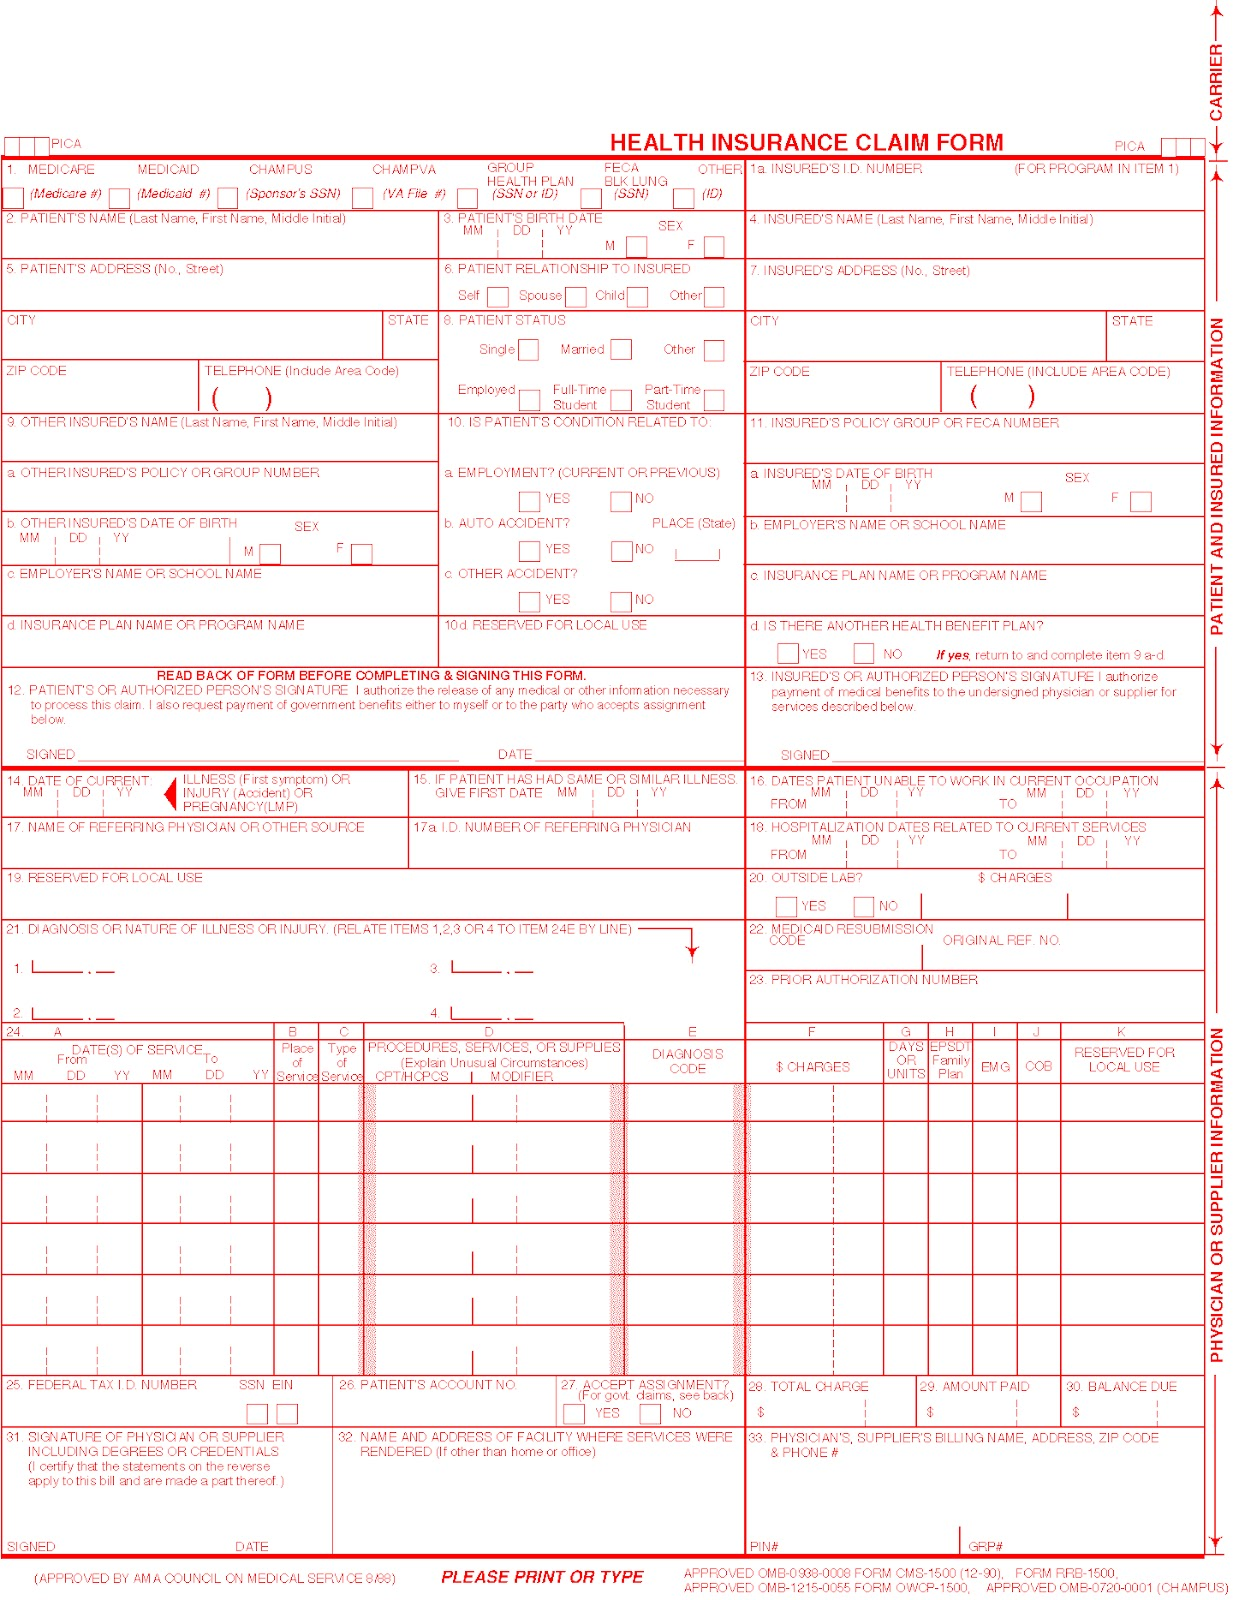 Health Claim Form Pictures to Pin PinsDaddy – Medical Claim Form